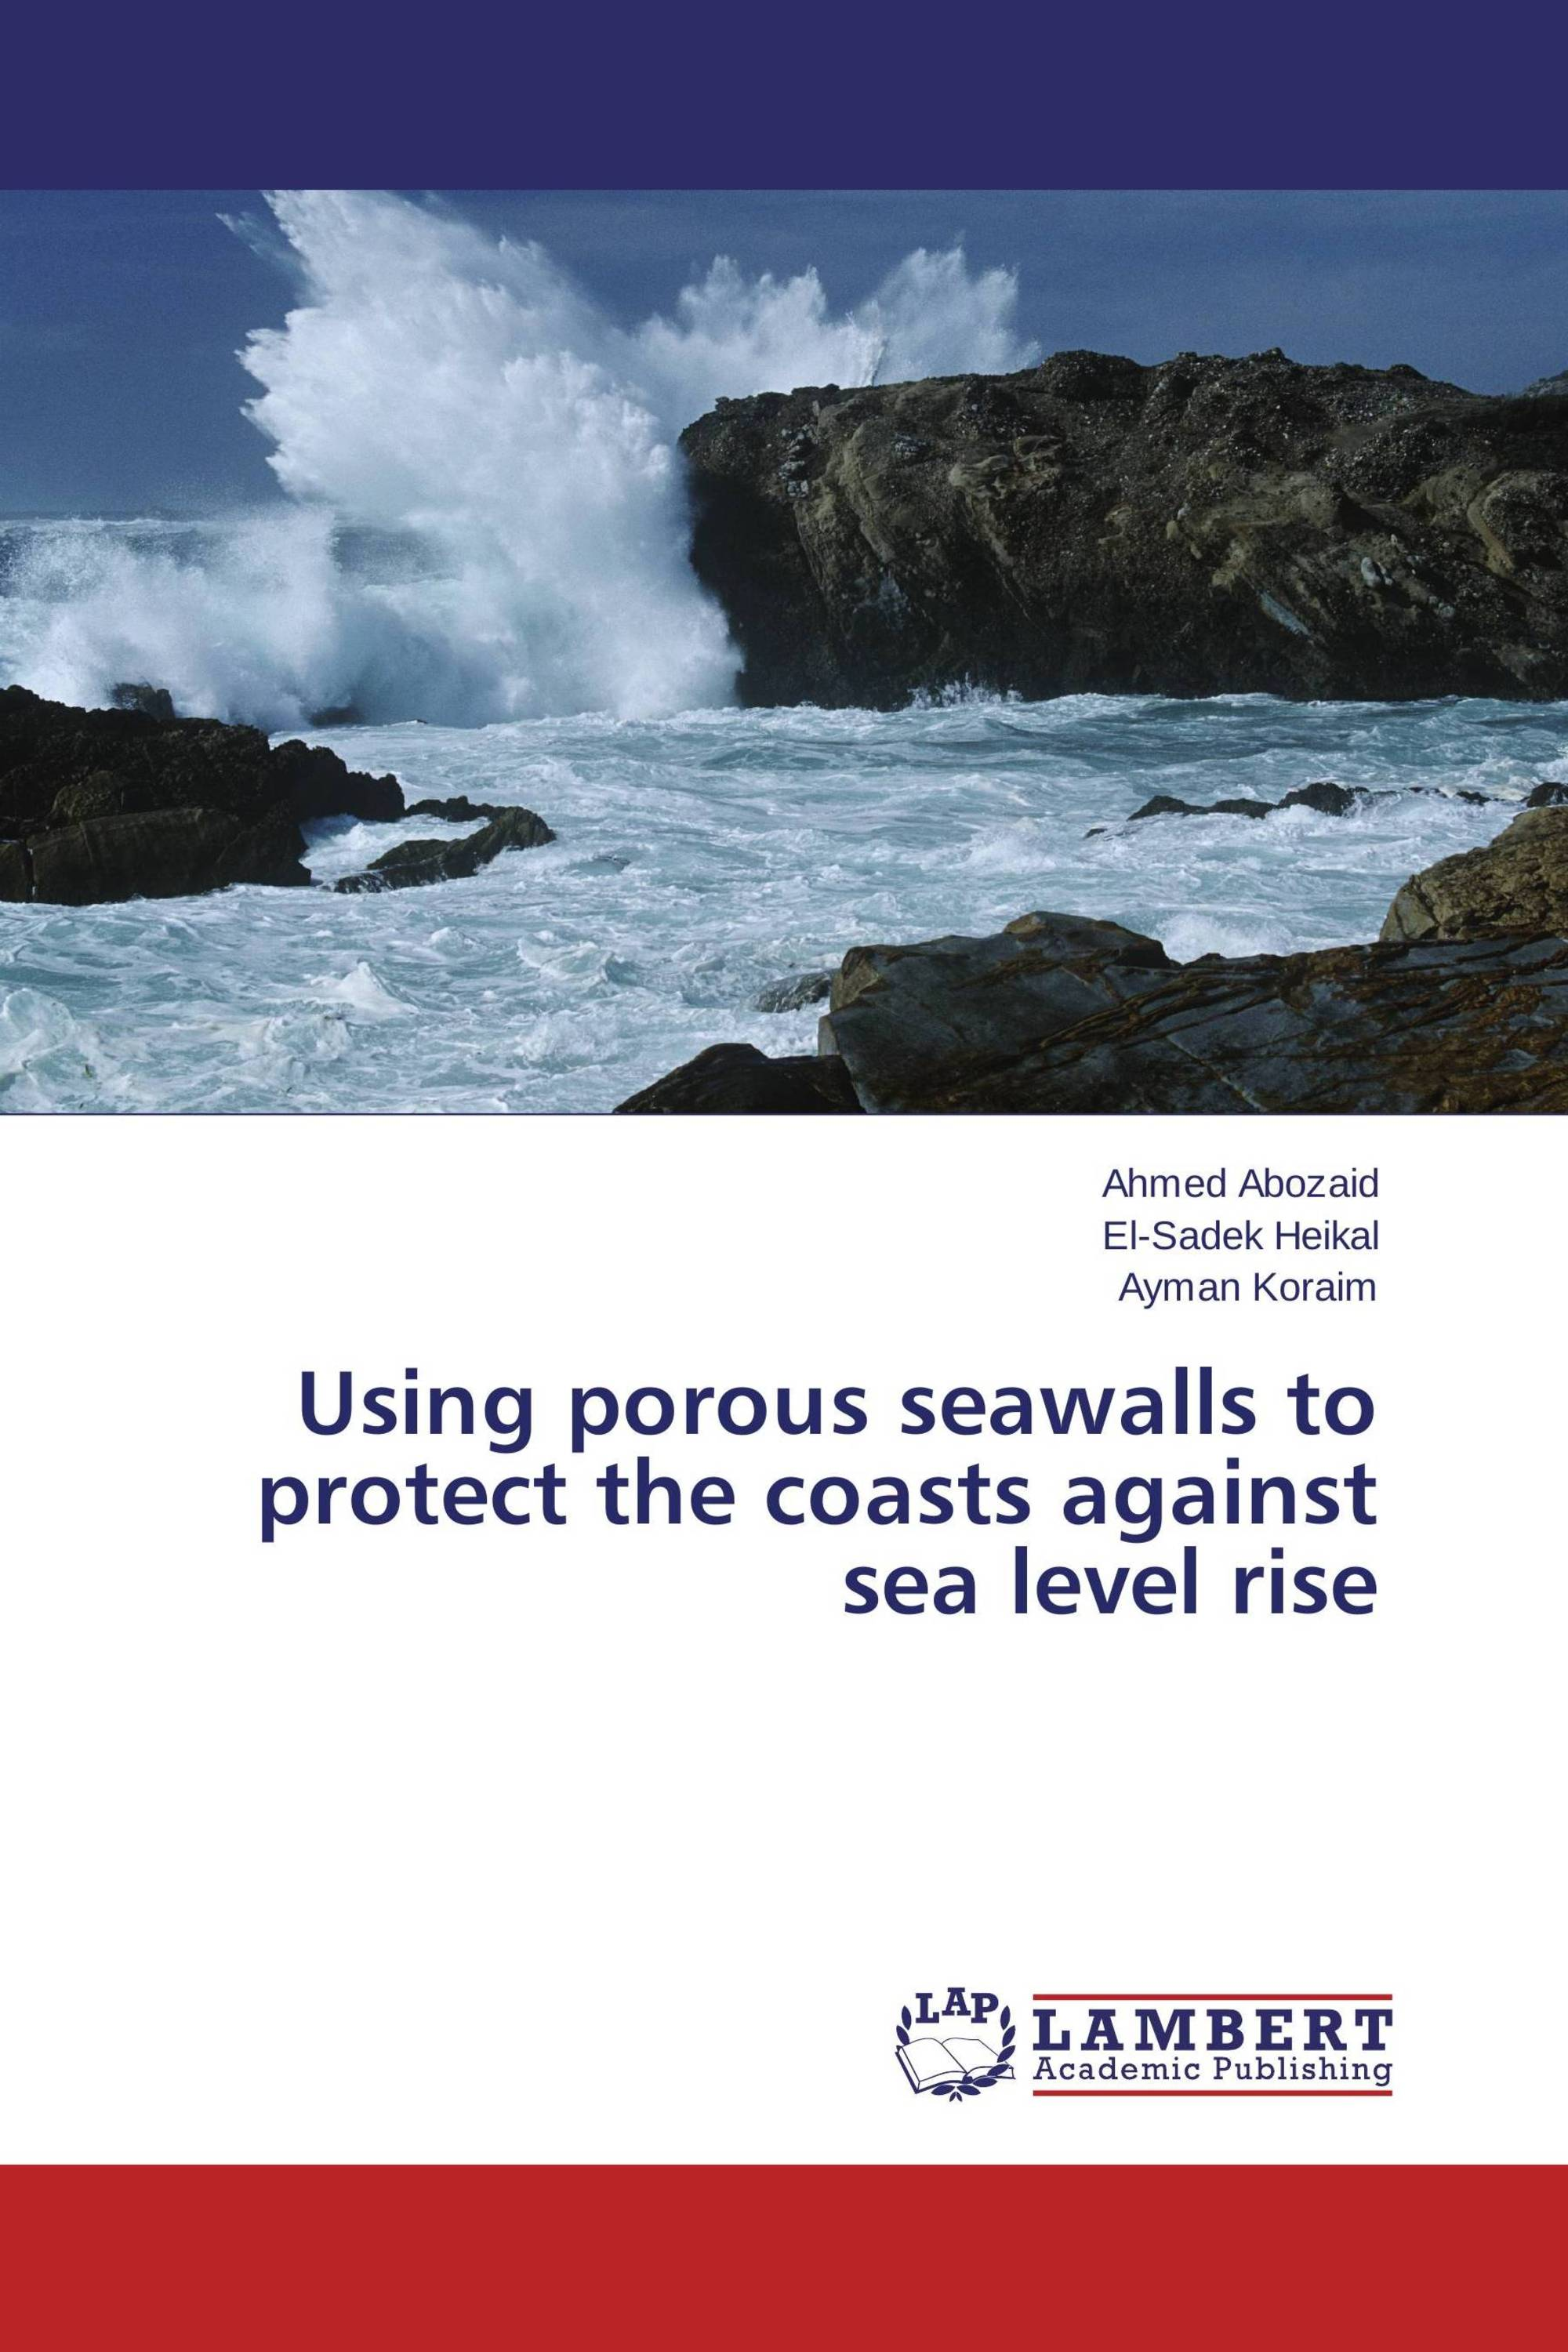 Using porous seawalls to protect the coasts against sea